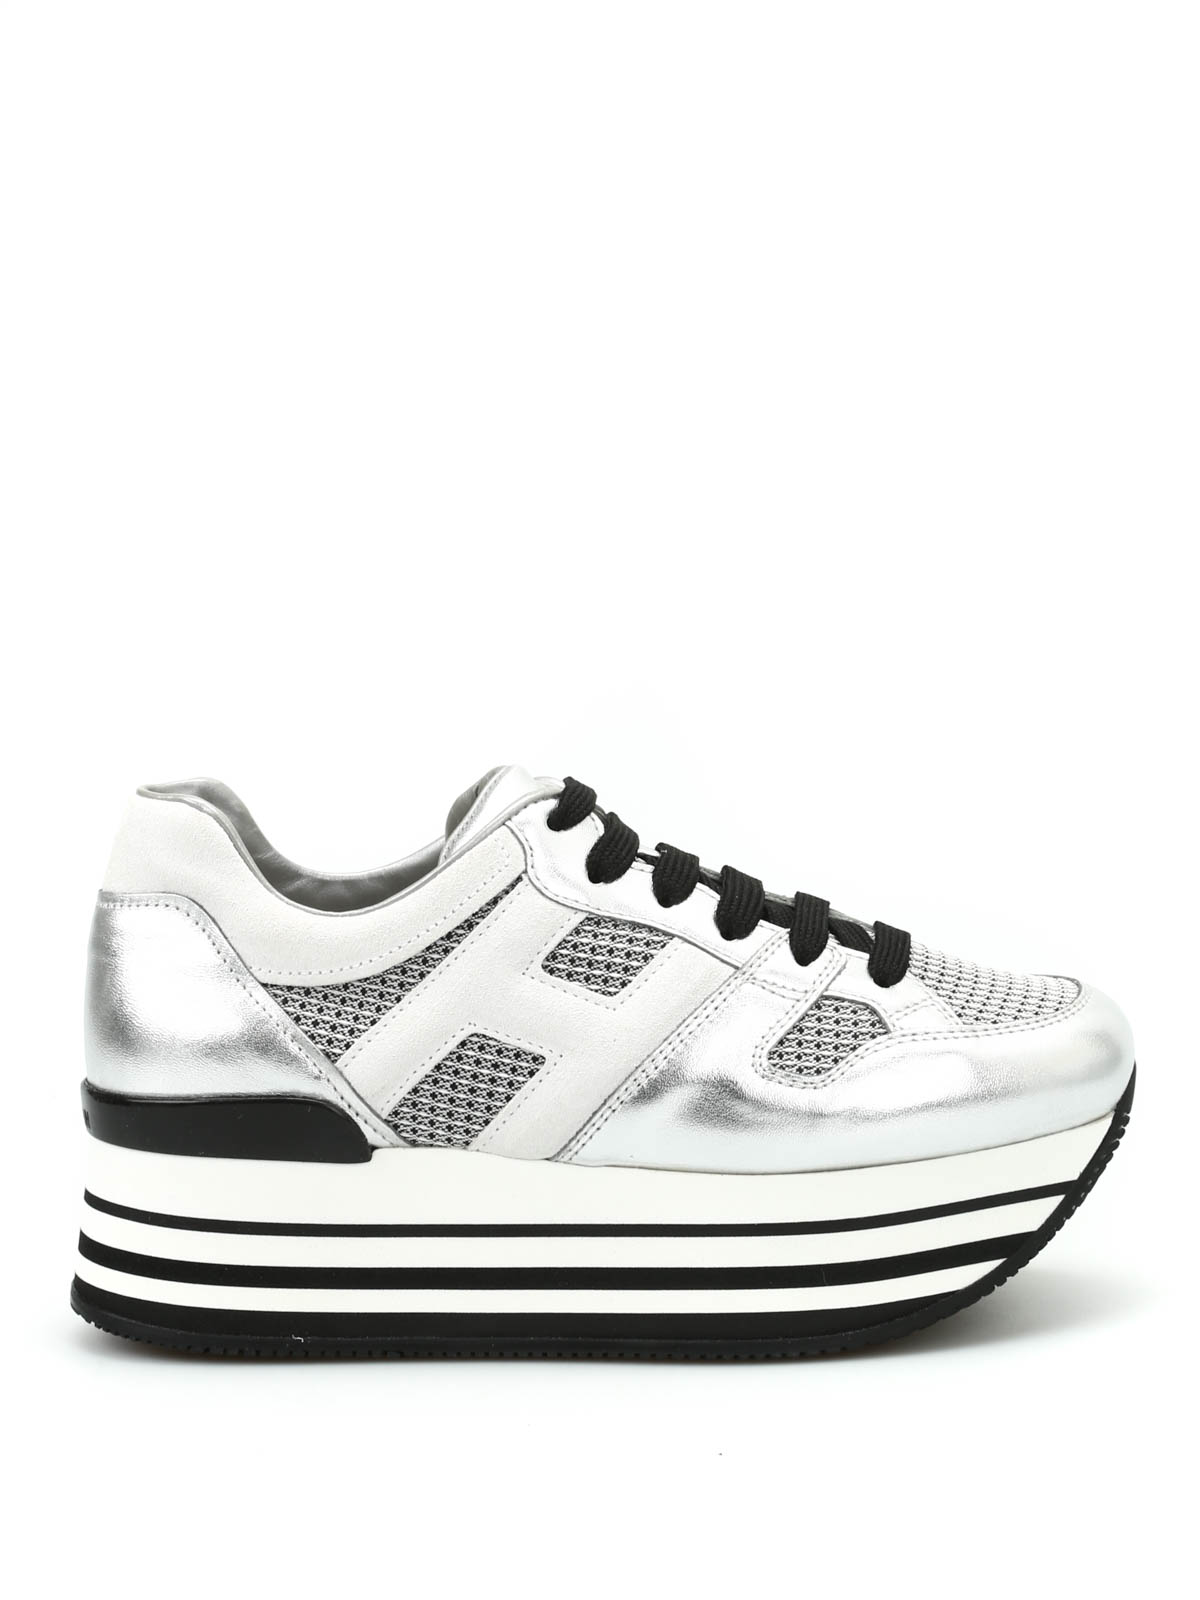 hogan sneakers maxi h222